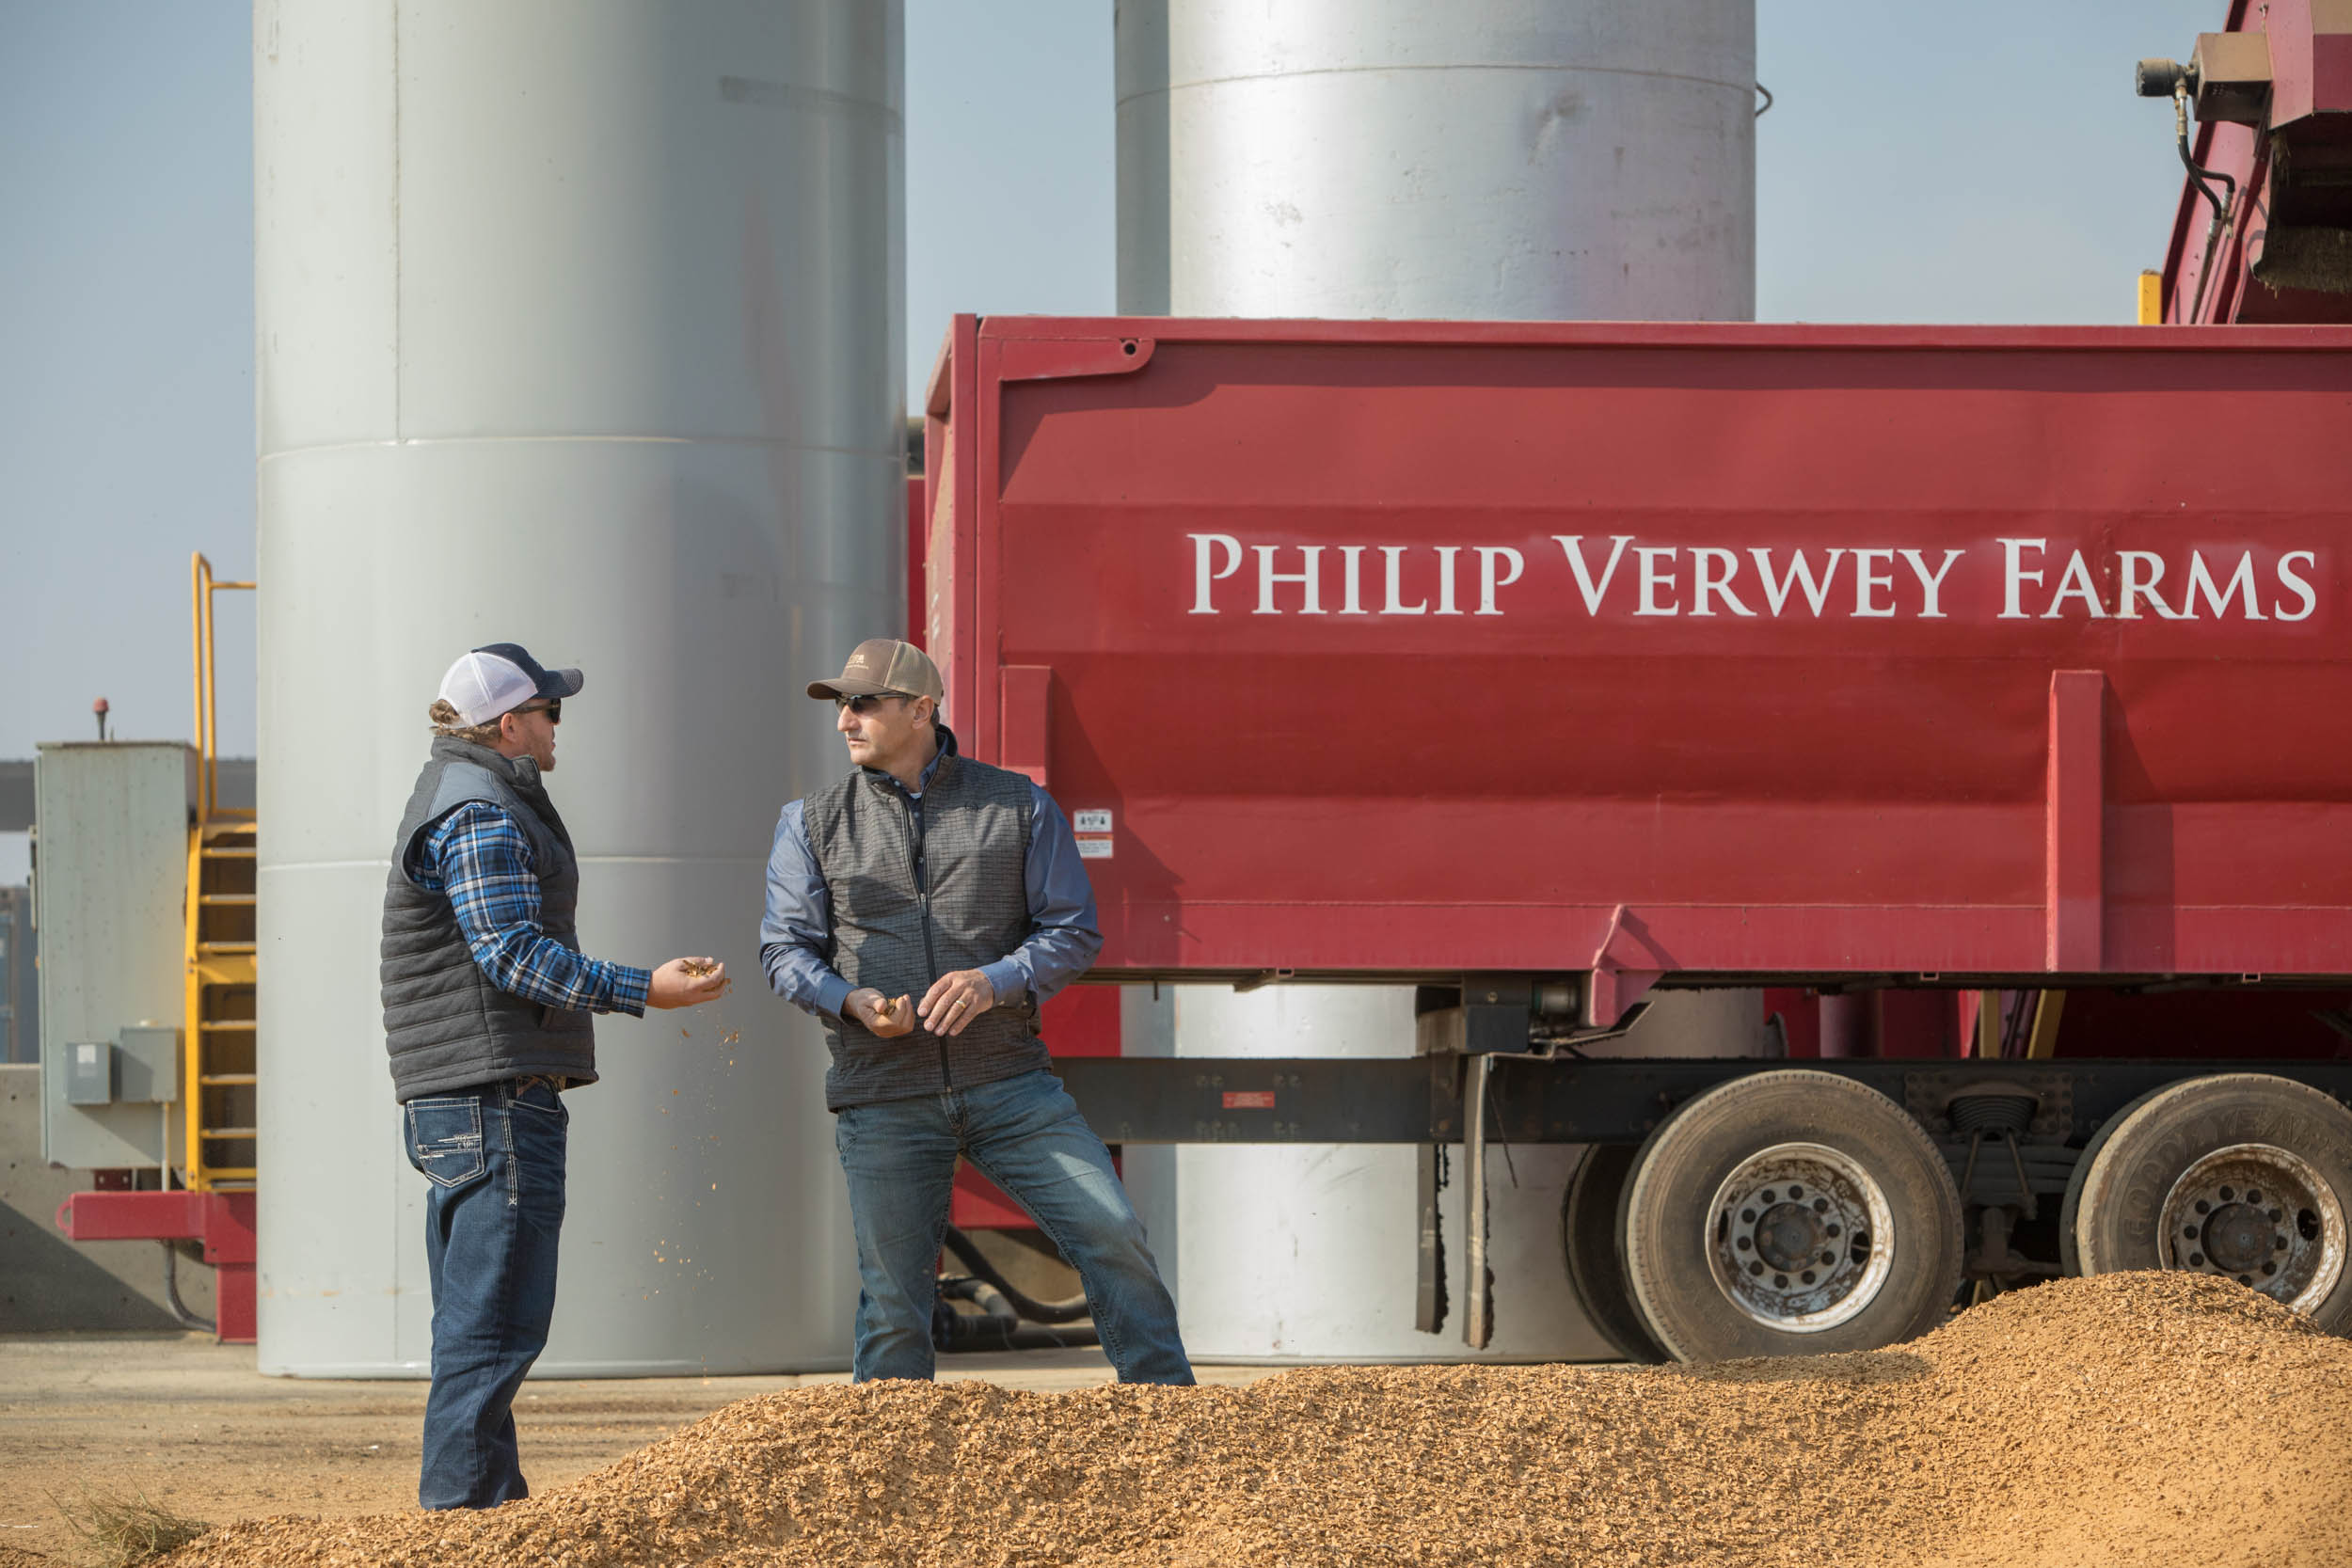 Philip Verwey Farms   043.jpg